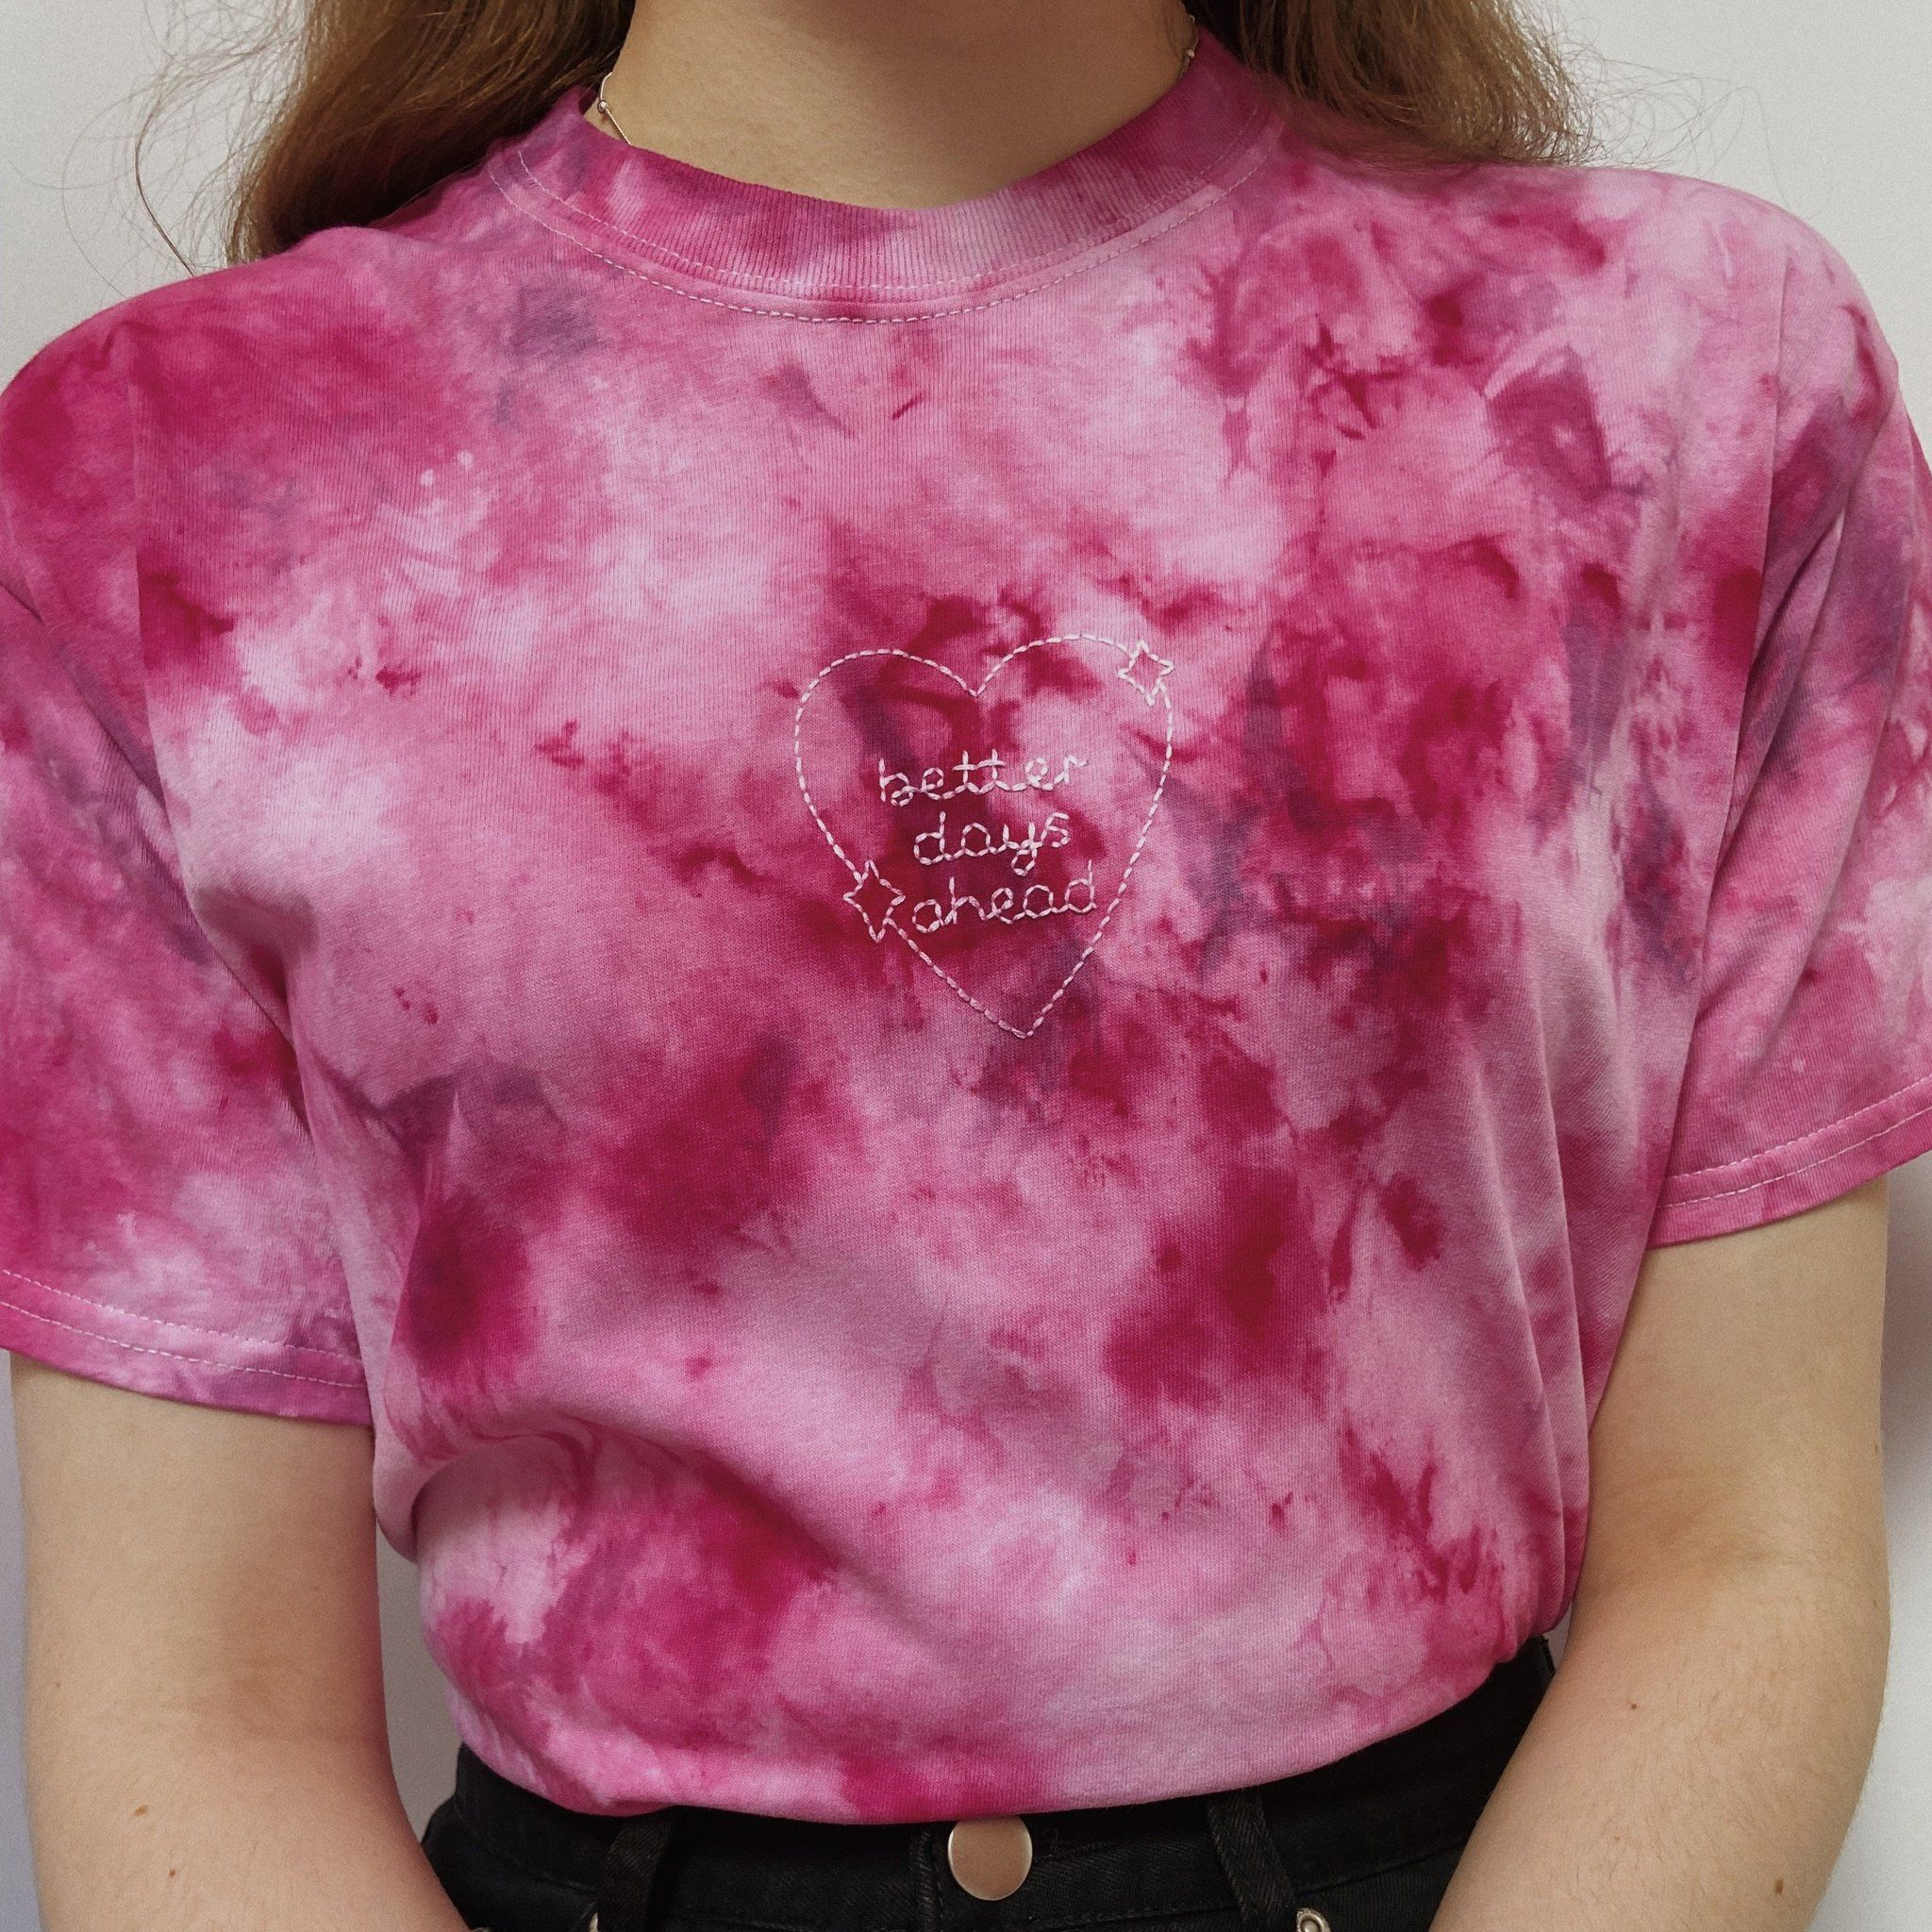 Hand Embroidered Tie Dye 'Better Days Ahead' T-Shirt